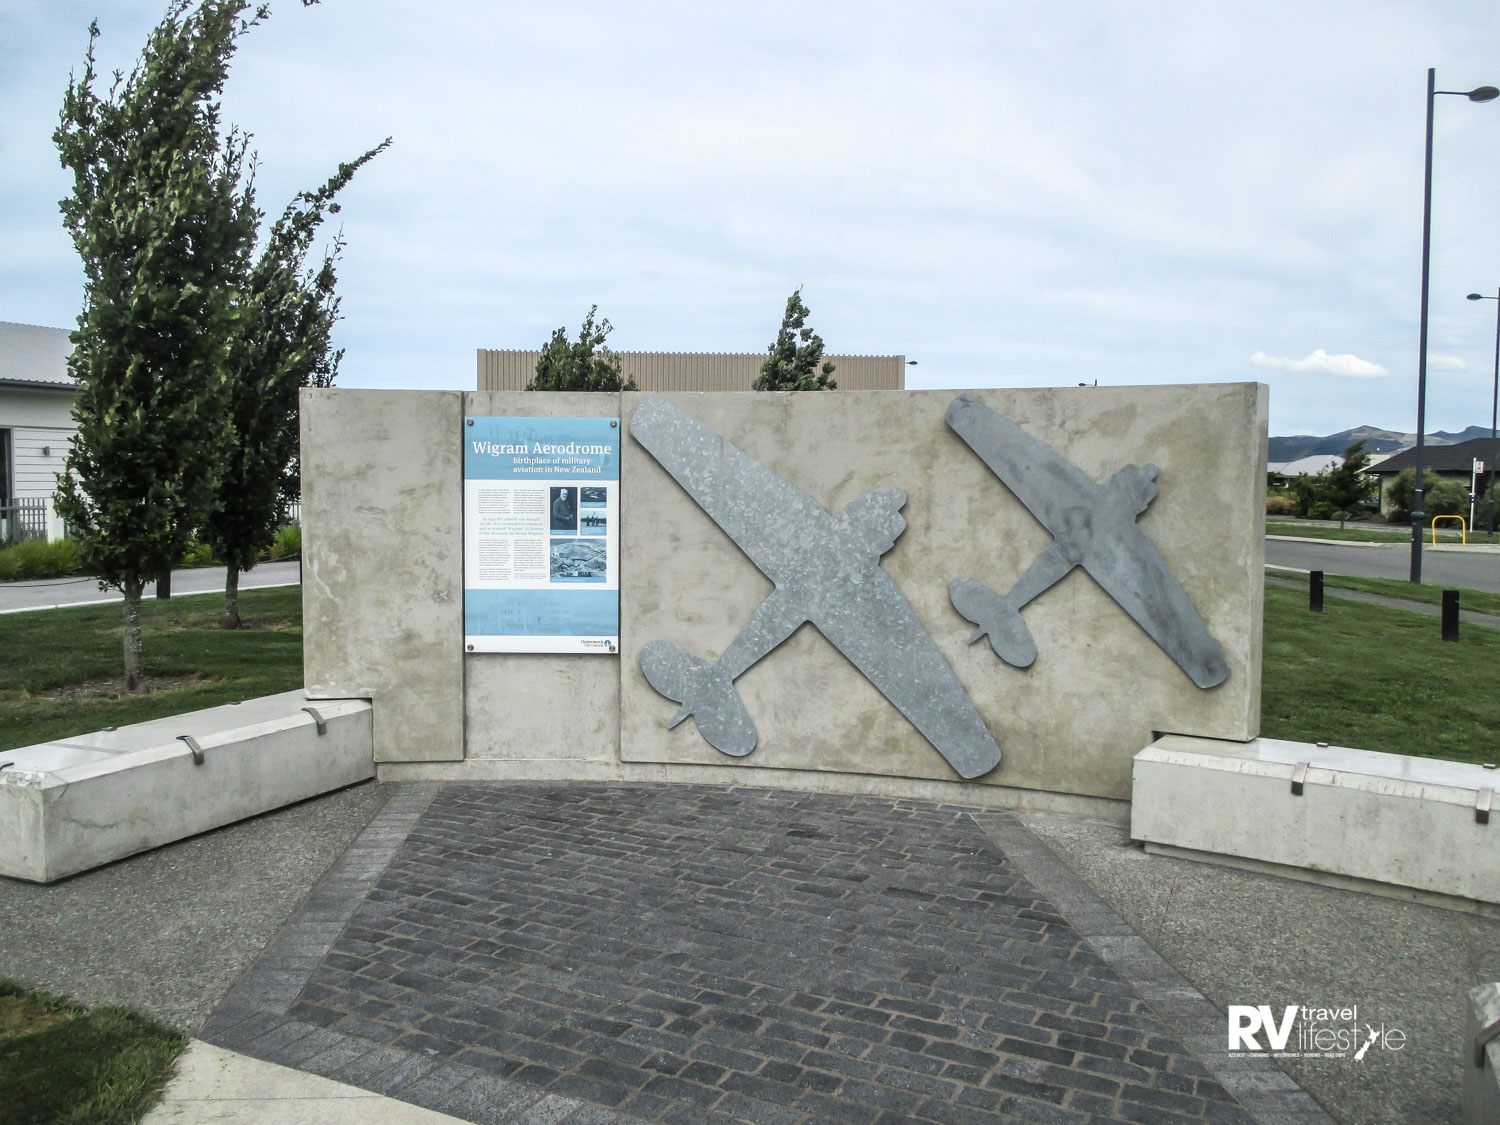 Memorial wall in the new Wigram housing estate